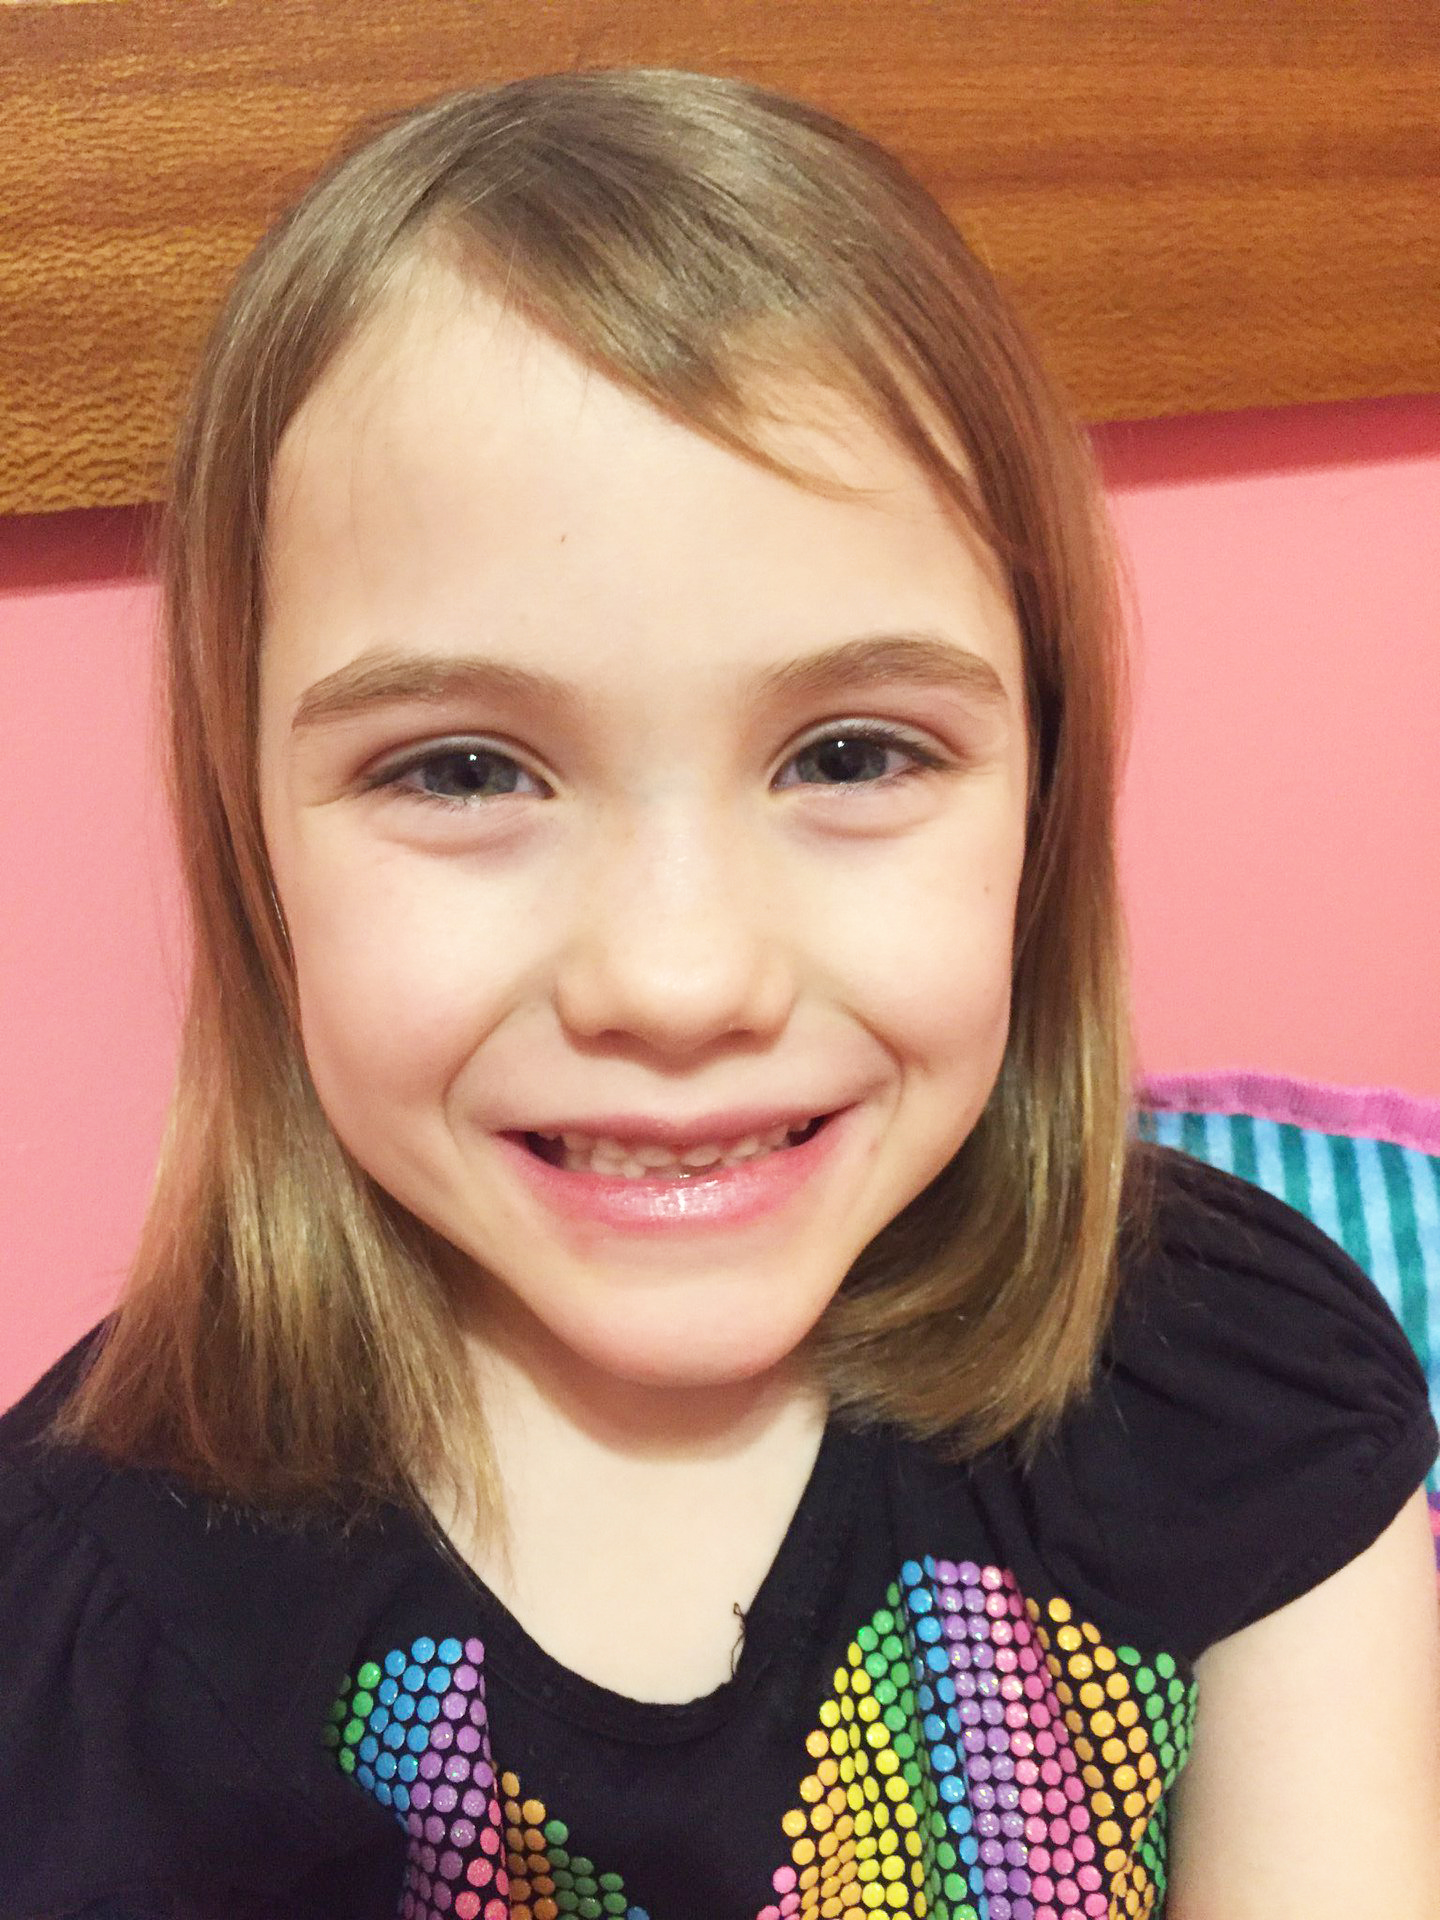 At church, and it was memorable having a friendship with my friend.  Anna, age 7  Bremen, Indiana